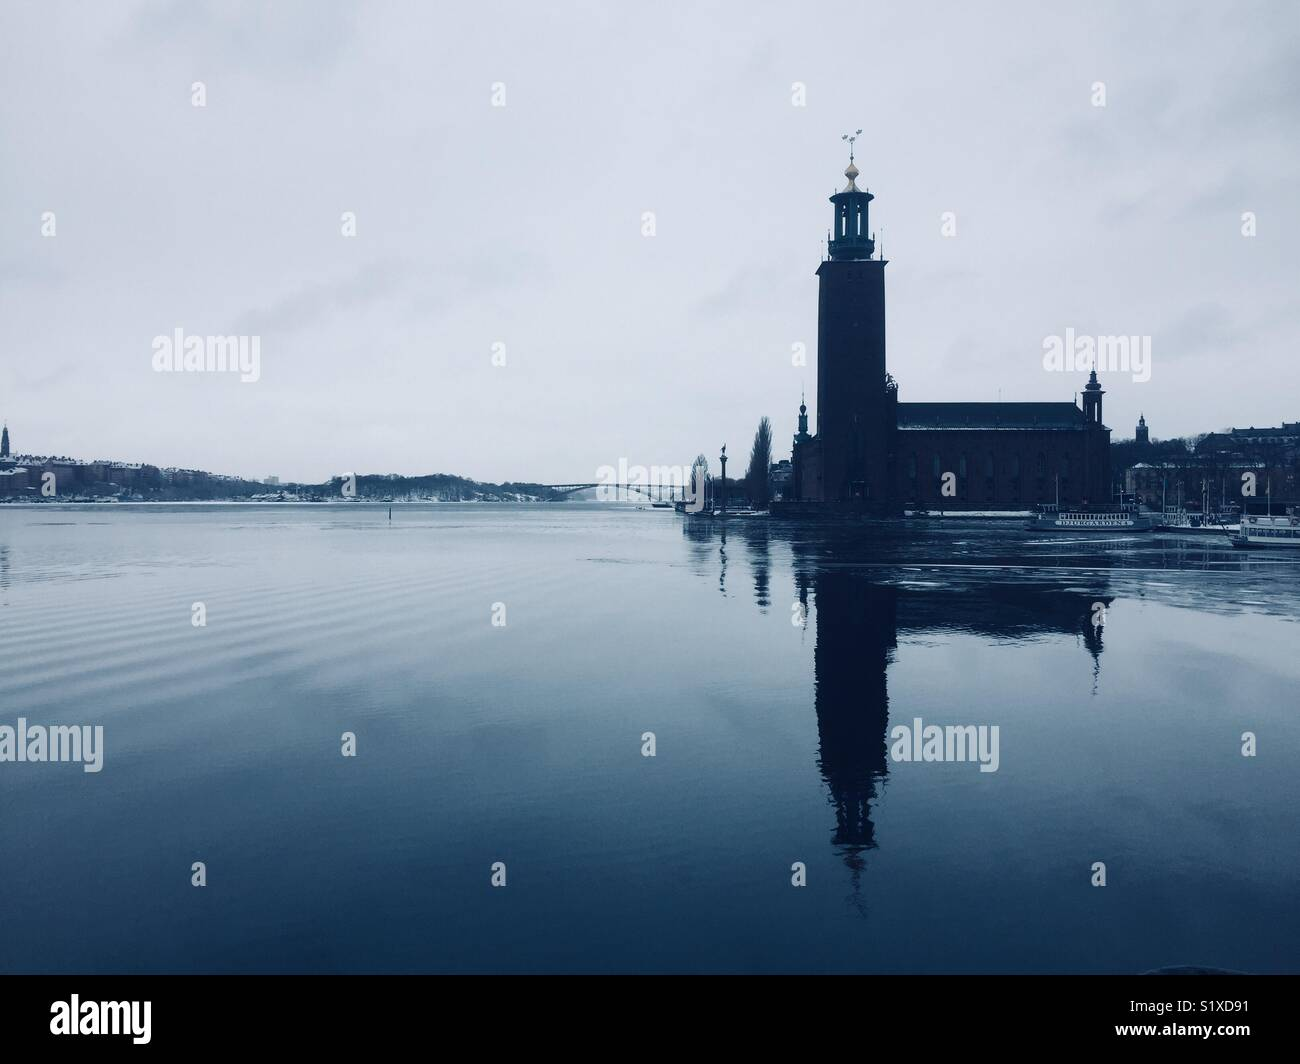 Stockholm town hall, stadhuset, reflected in water - Stock Image